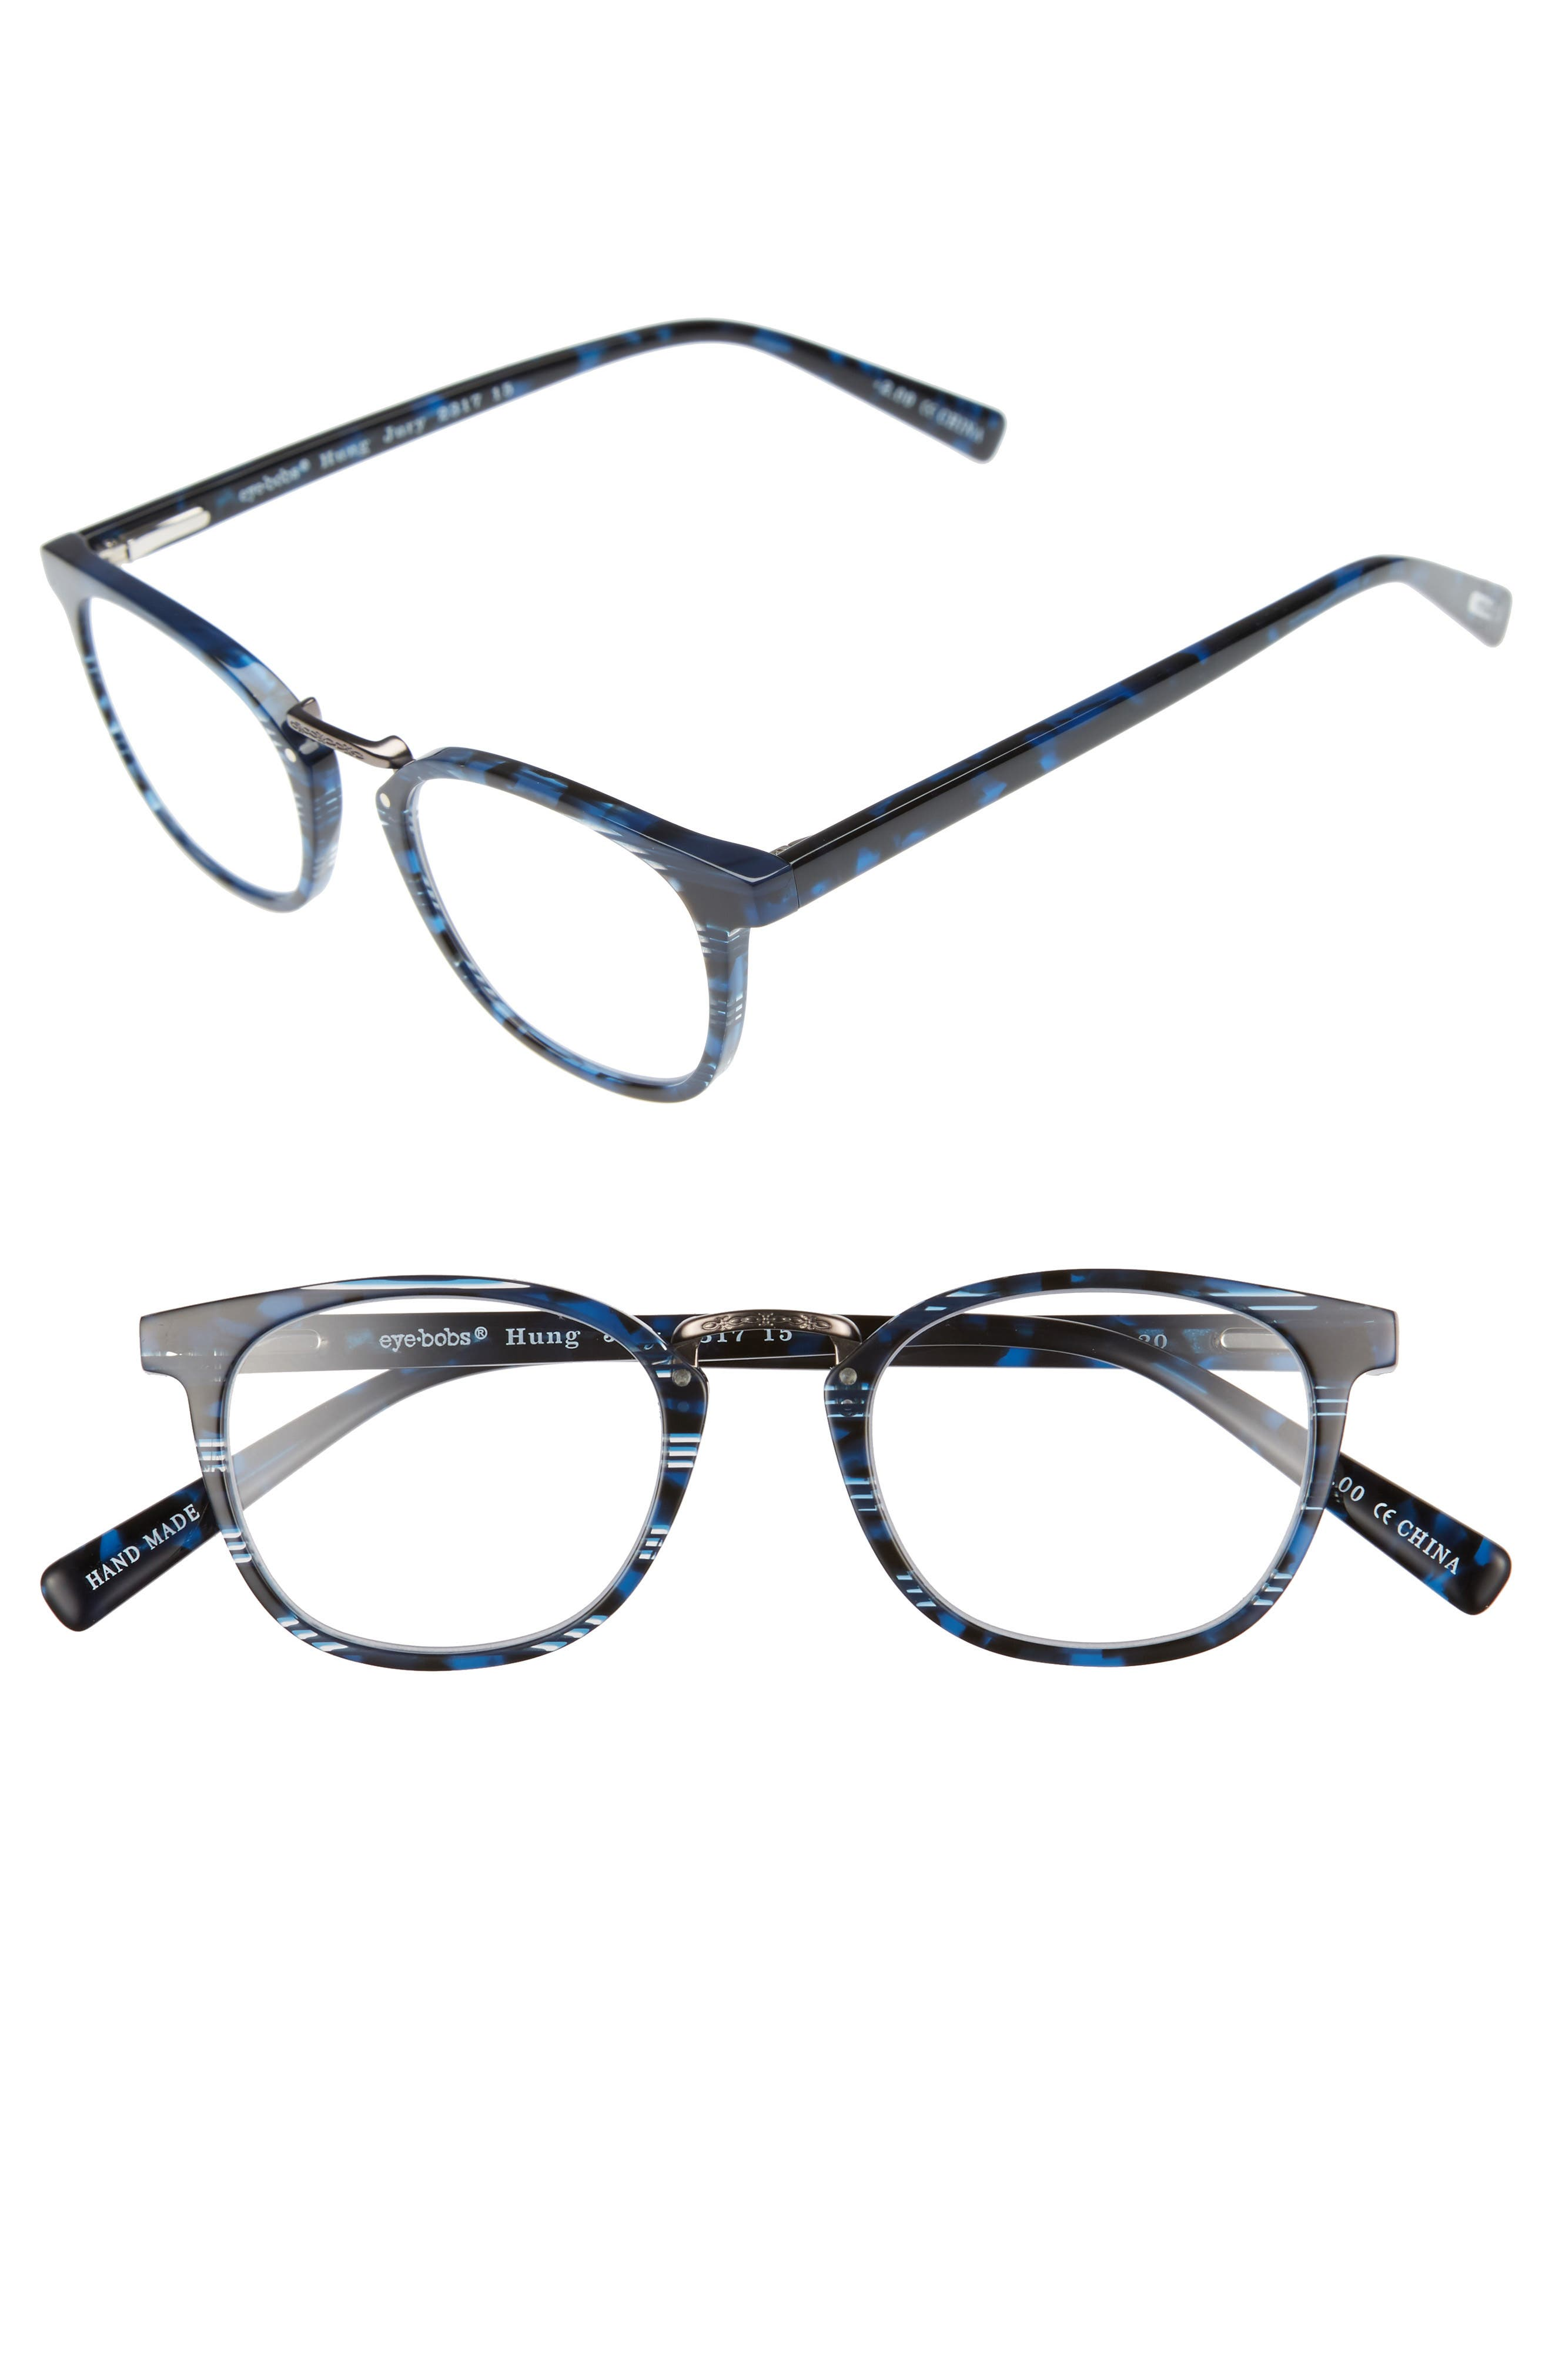 Alternate Image 1 Selected - Eyebob Hung Jury 46mm Reading Glasses